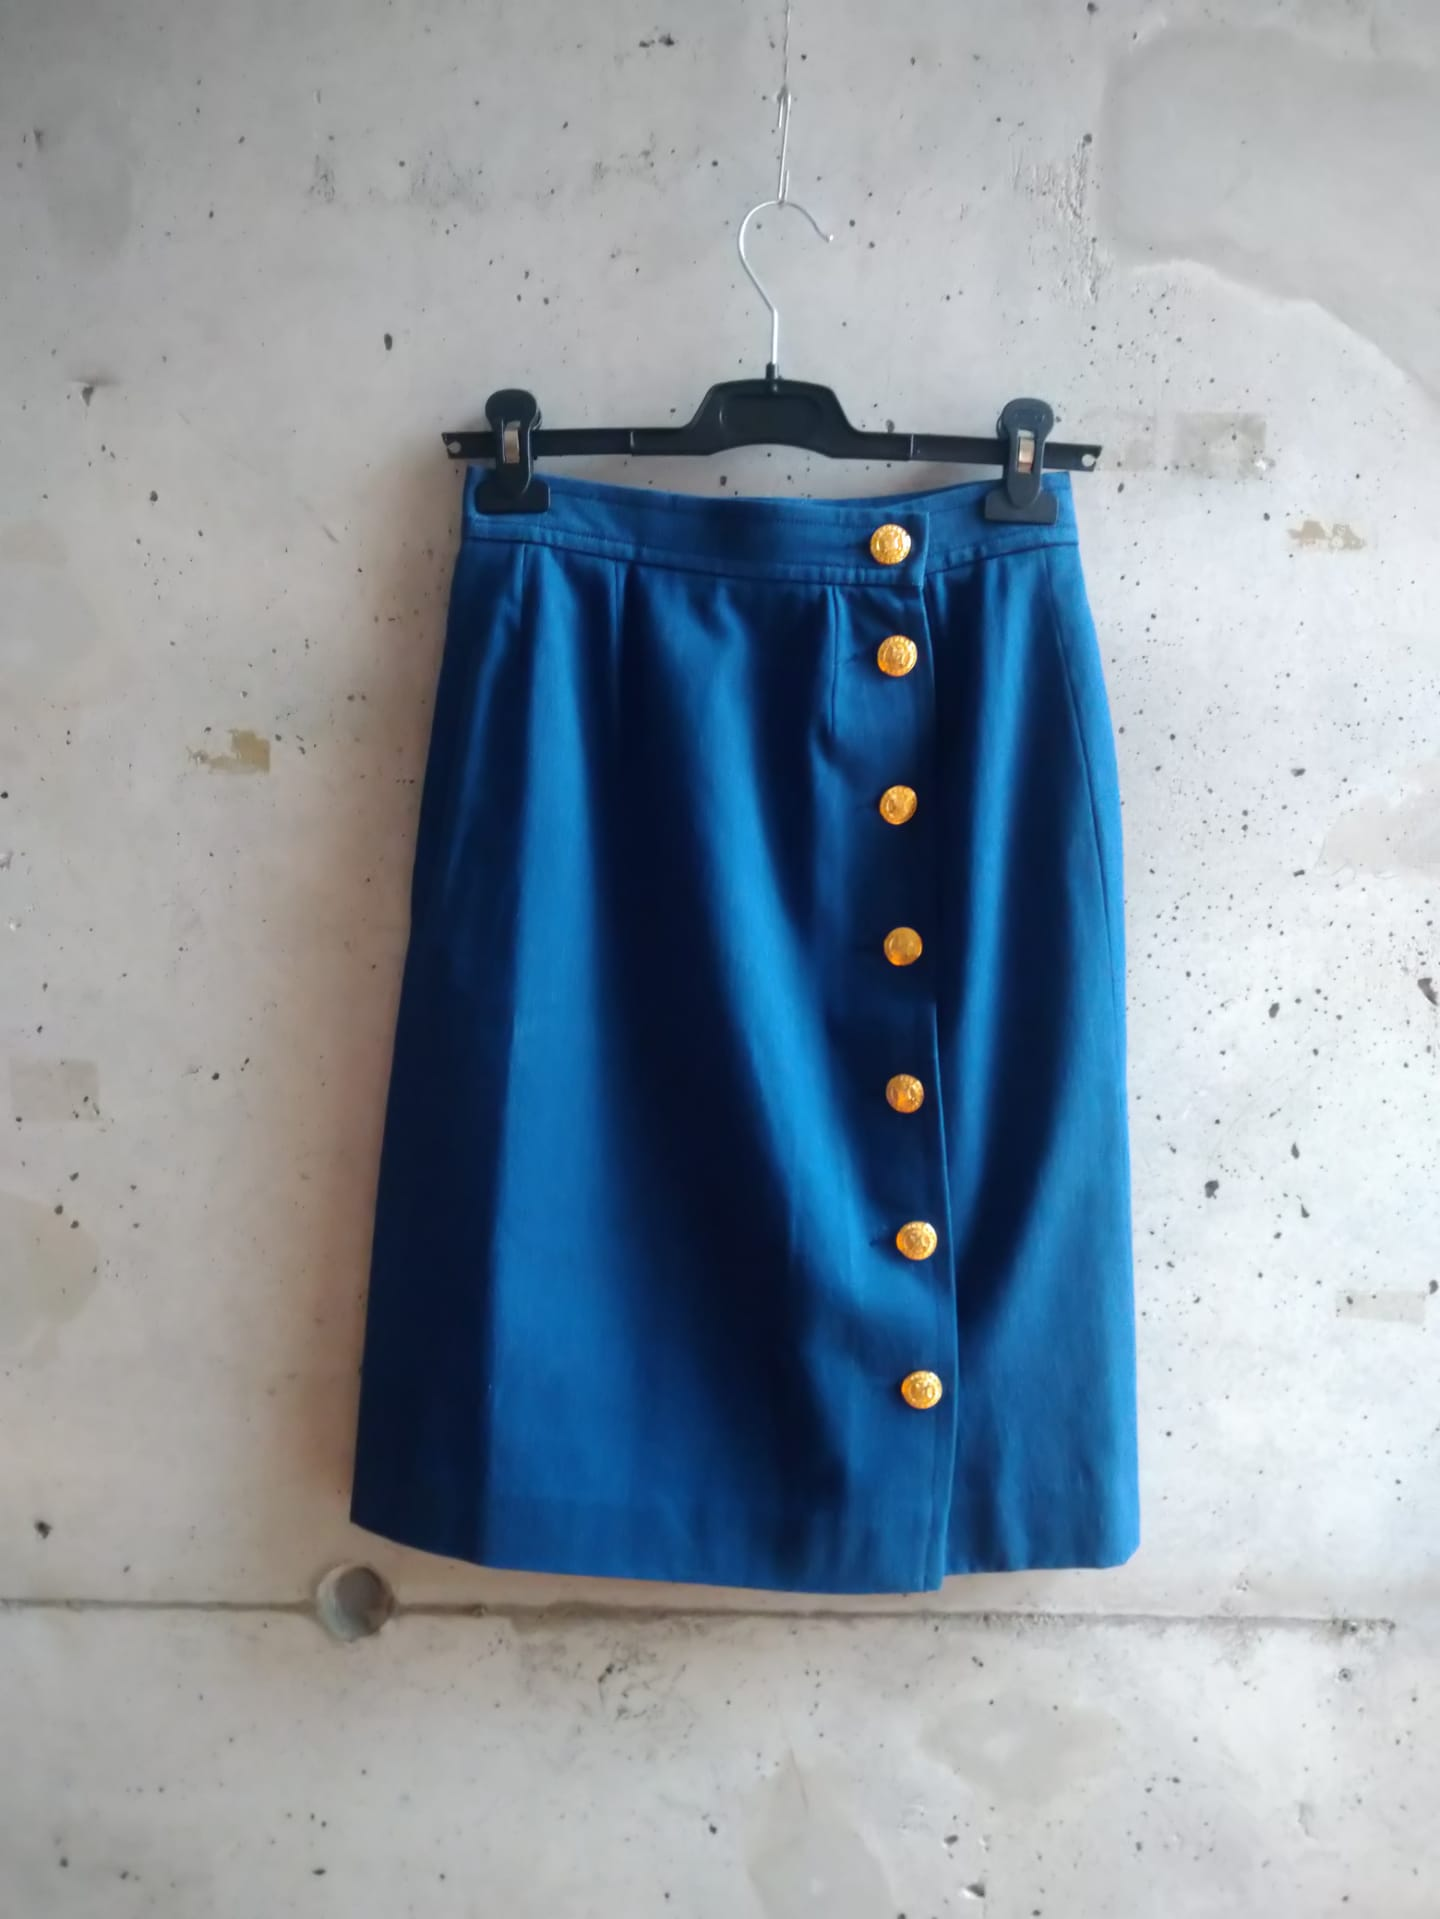 Celine pencil skirt with golden buttons